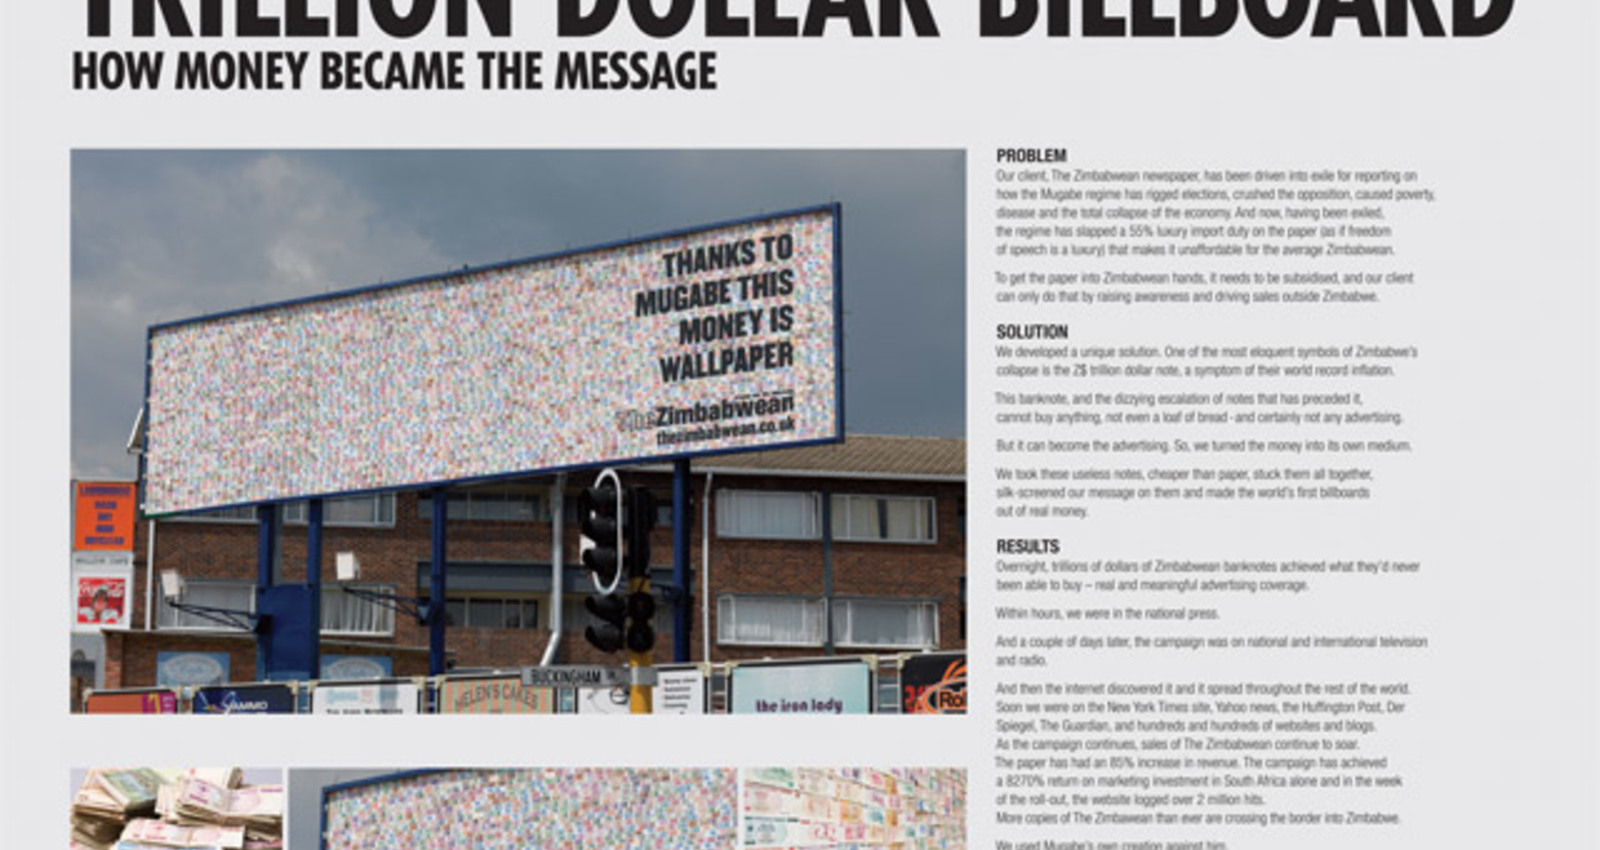 The Trillion Dollar Billboard